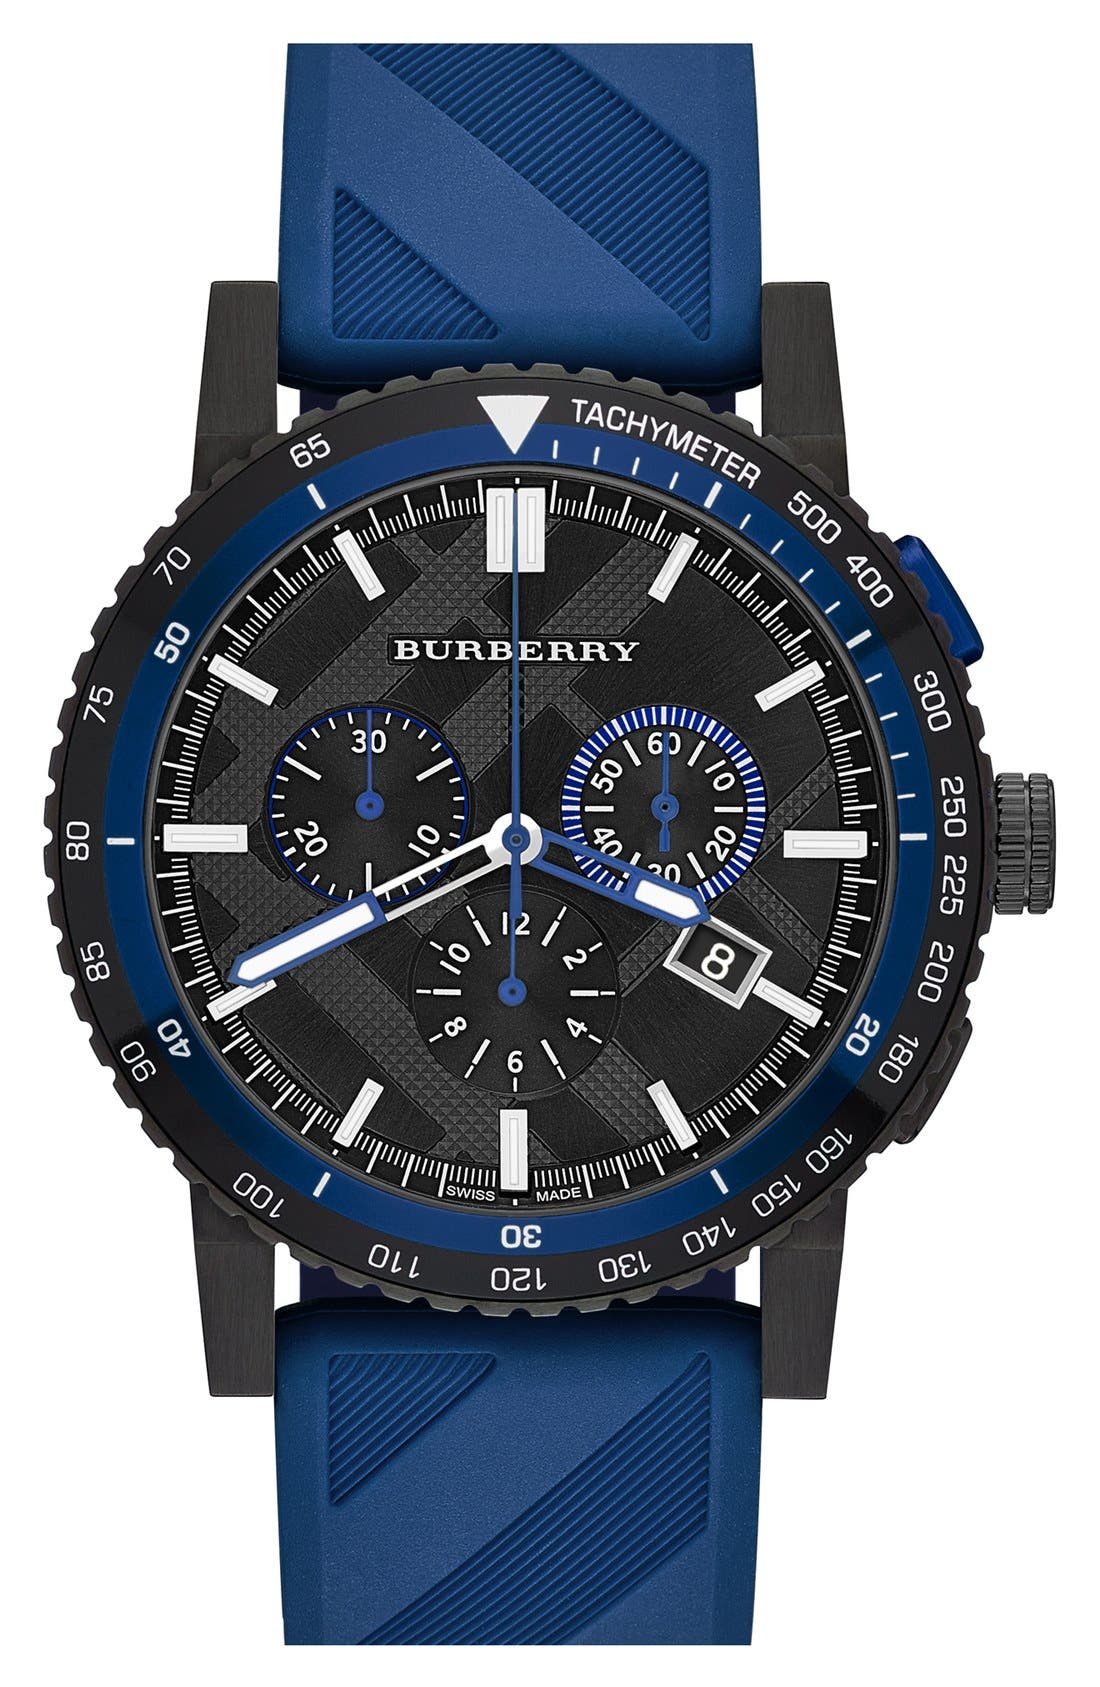 Main Image - Burberry Chronograph Rubber Strap Watch, 42mm